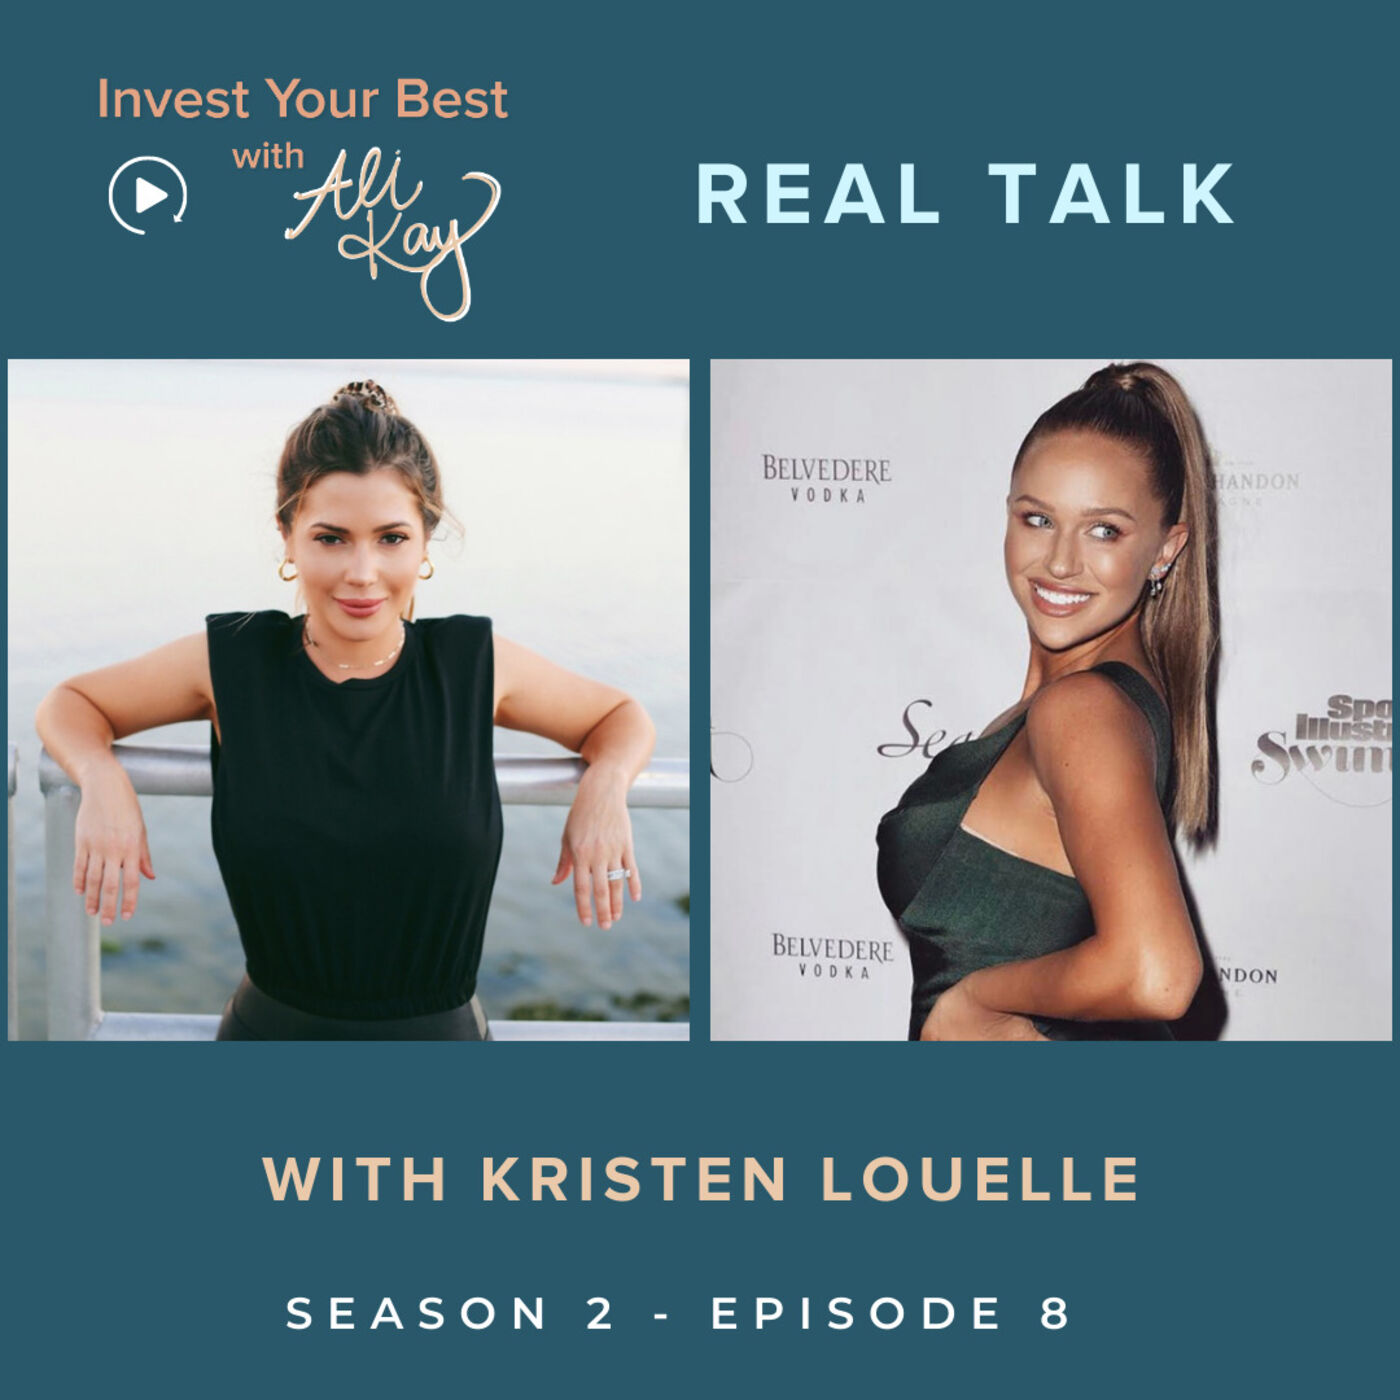 Real Talk with Kristen Louelle